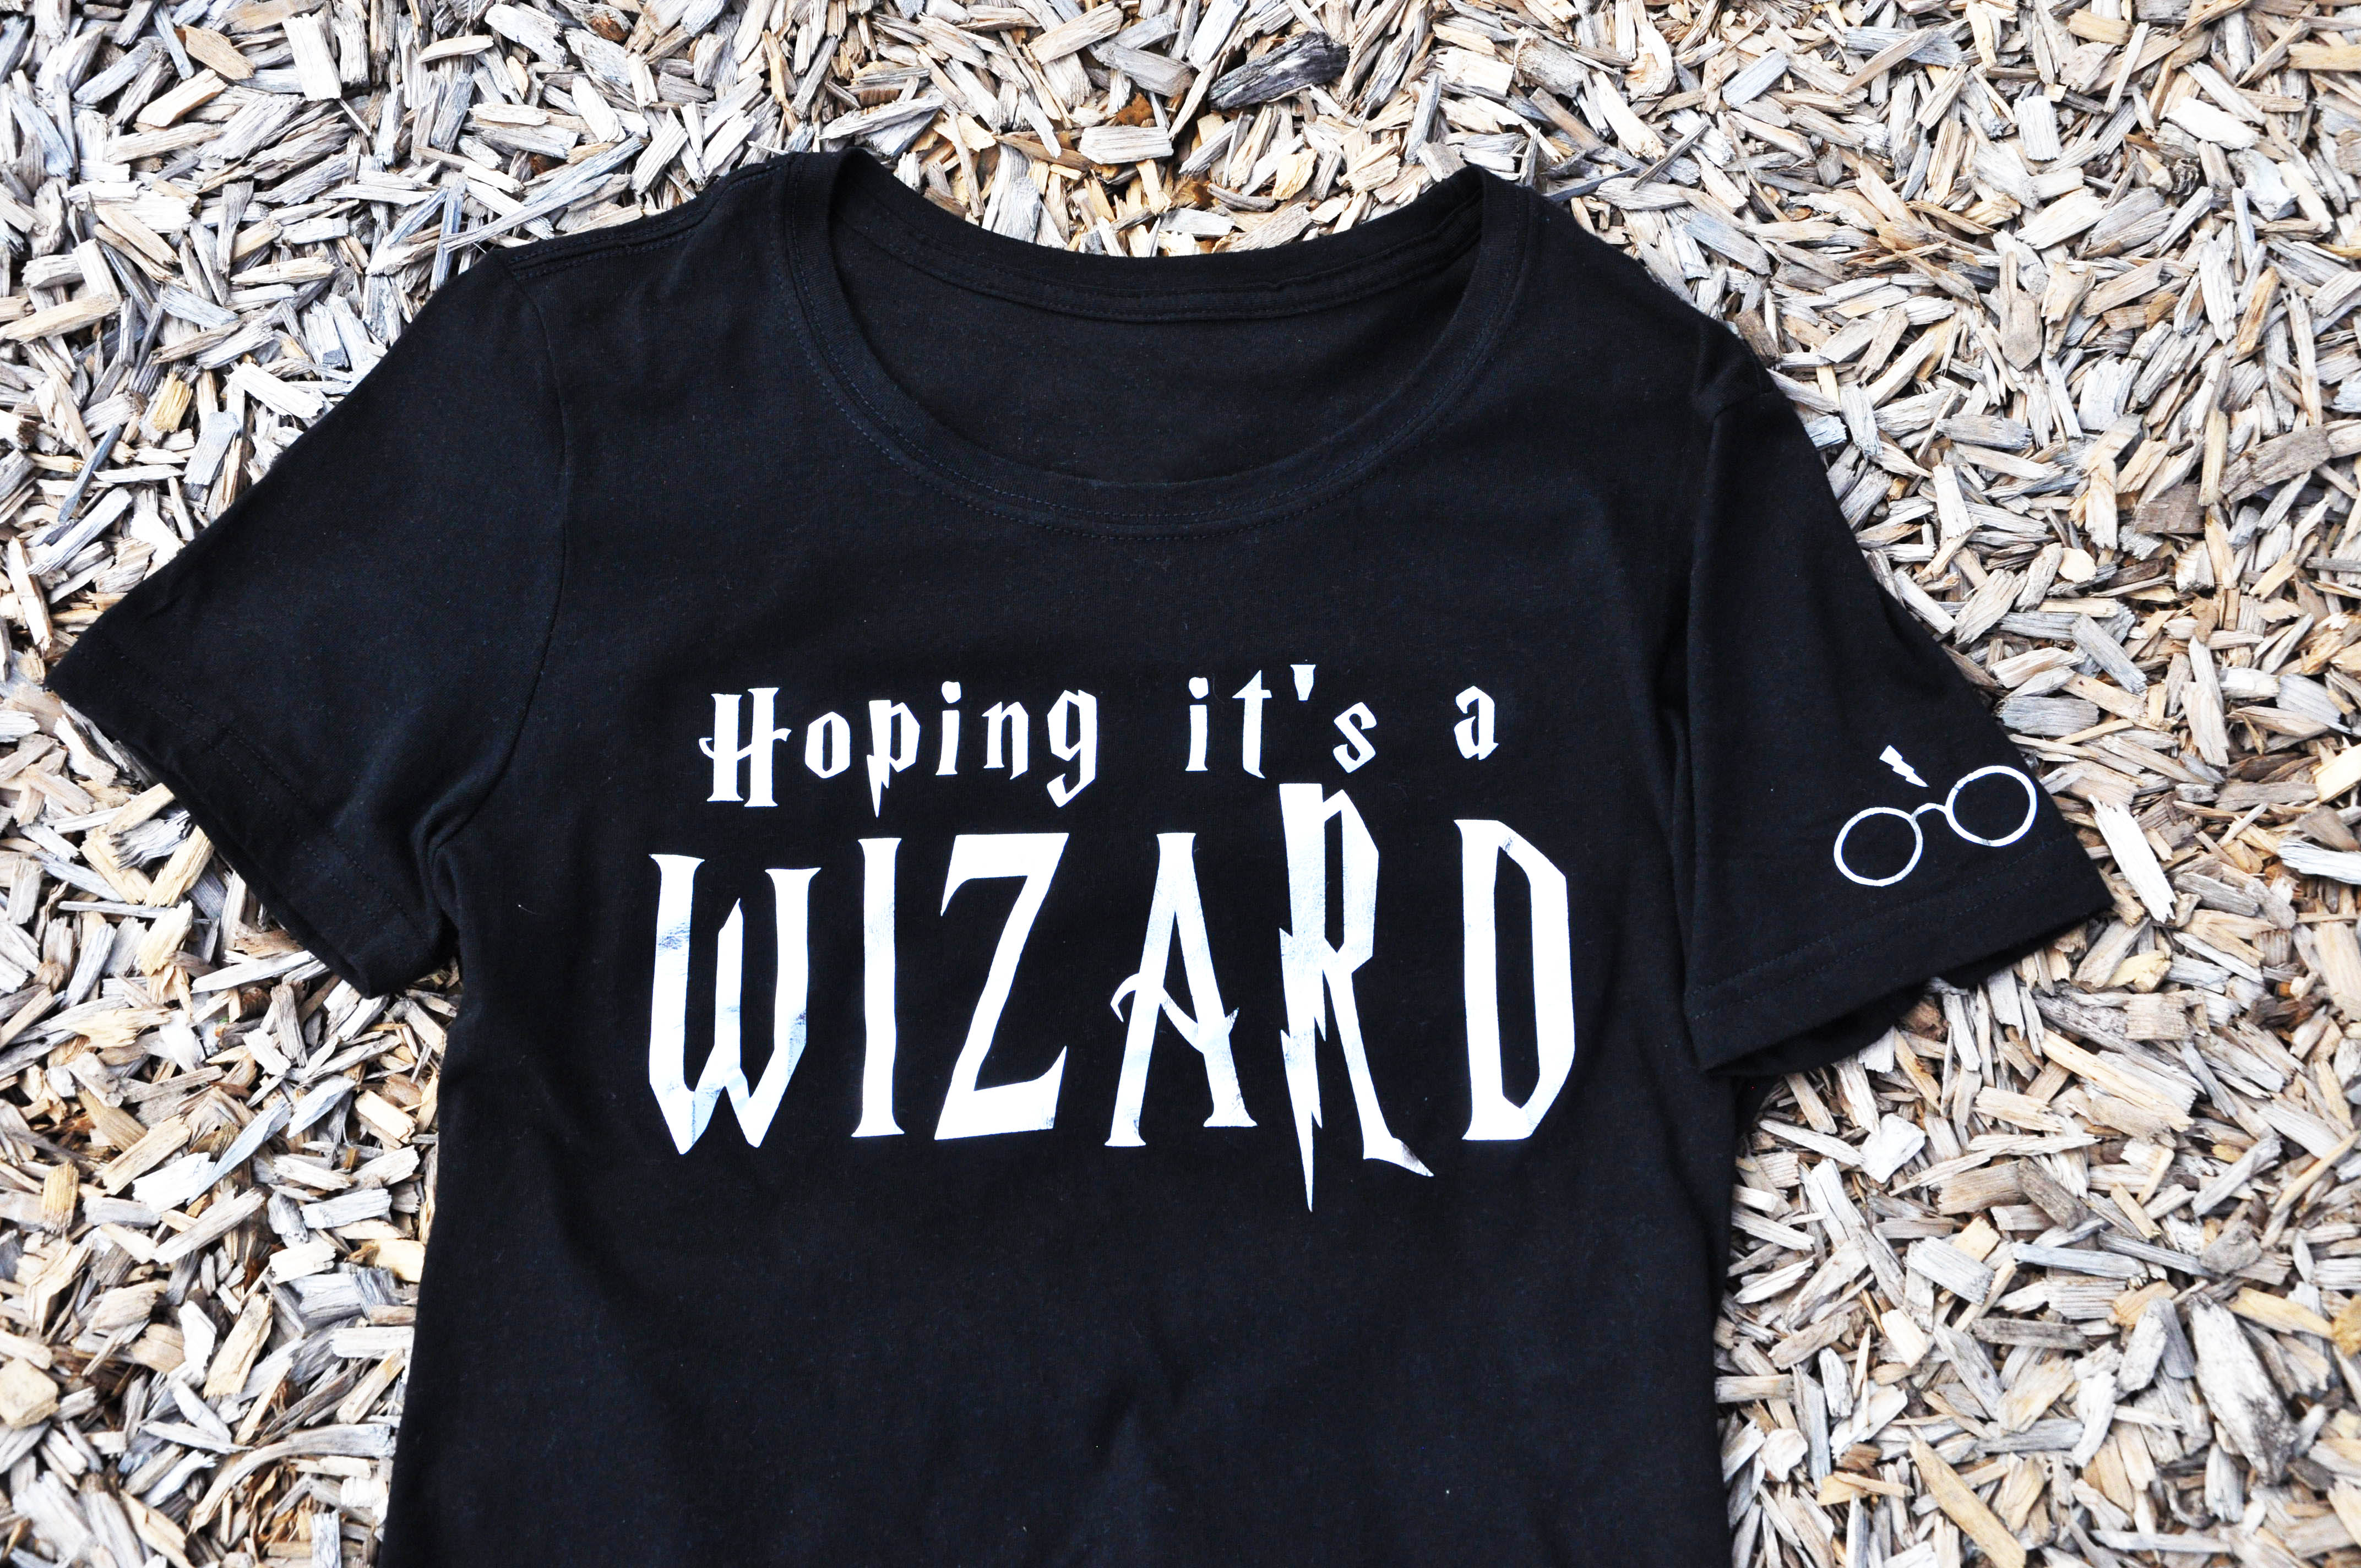 DIY Foil Cricut Shirt Tutorial : Hoping it's a wizard t-shirt